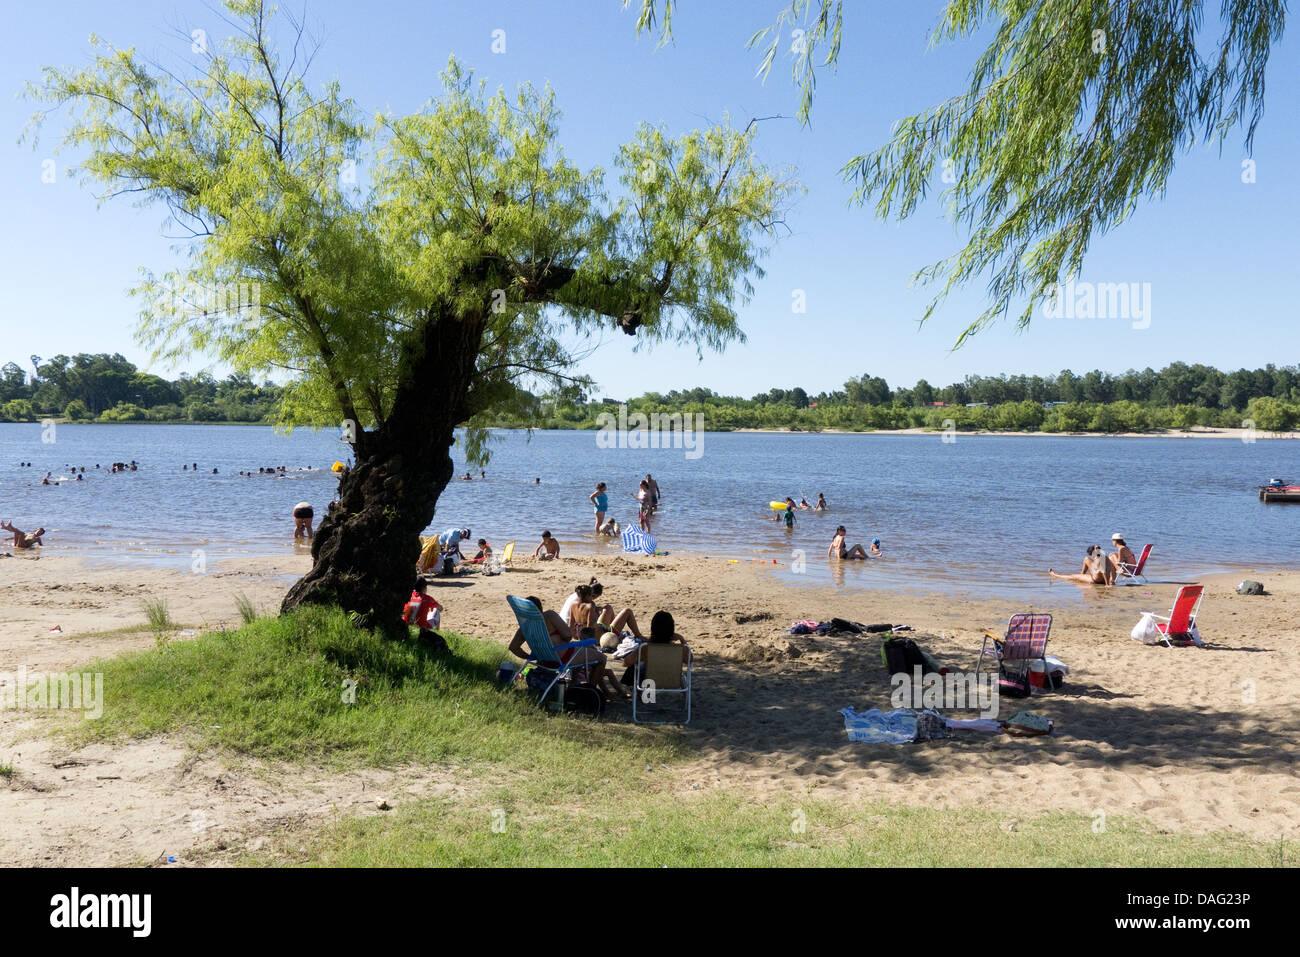 Public beach on the bank of the Rio Negro in the town of Mercedes, Soriano department, Uruguay - Stock Image